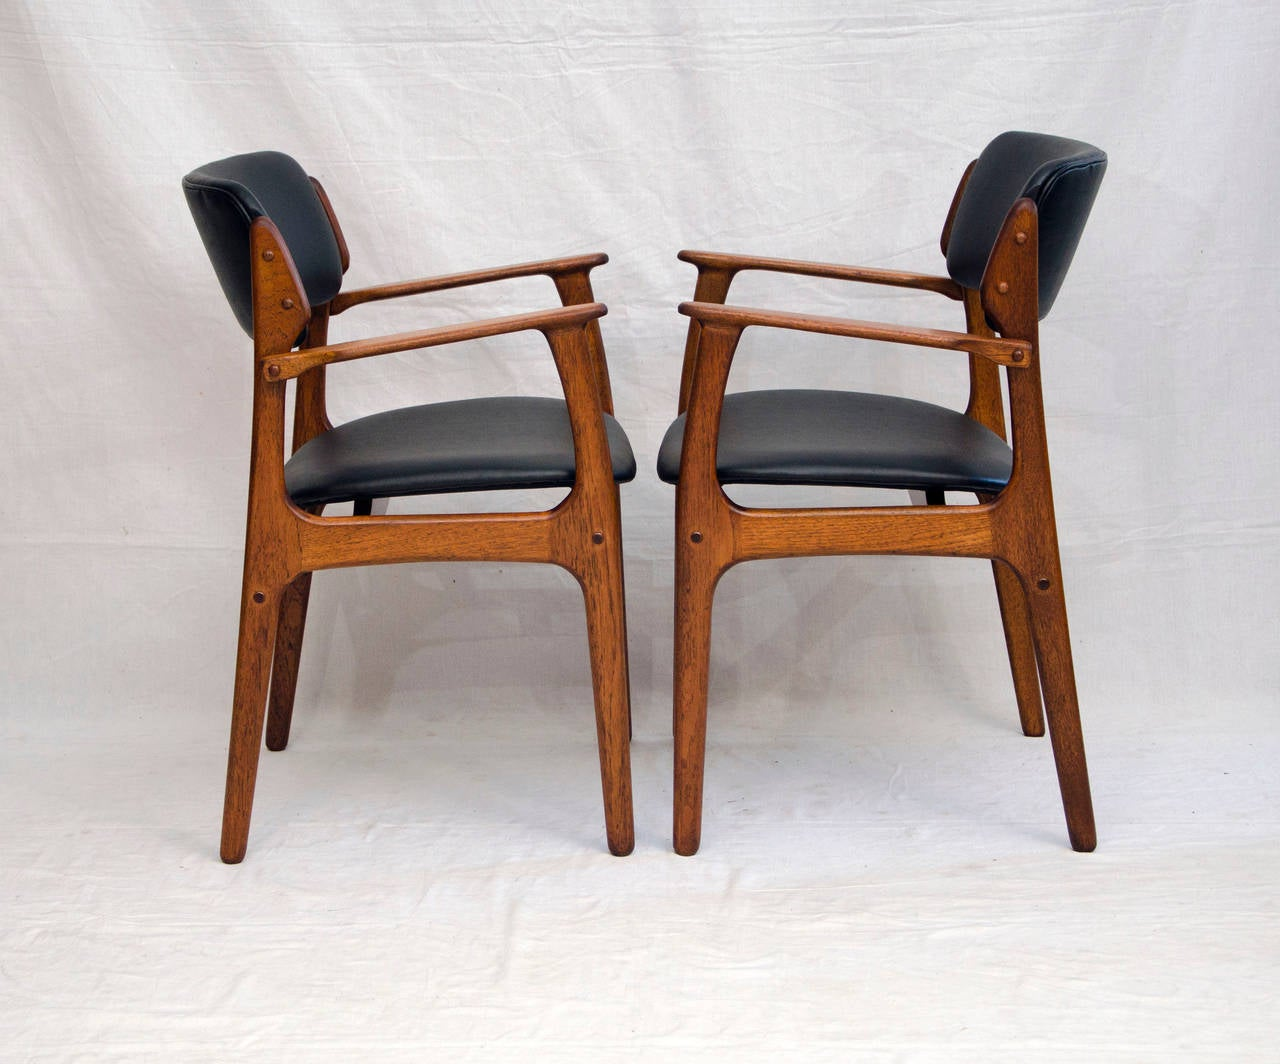 erik buck chairs floating pool chair with umbrella set of 12 danish teak dining by at 1stdibs